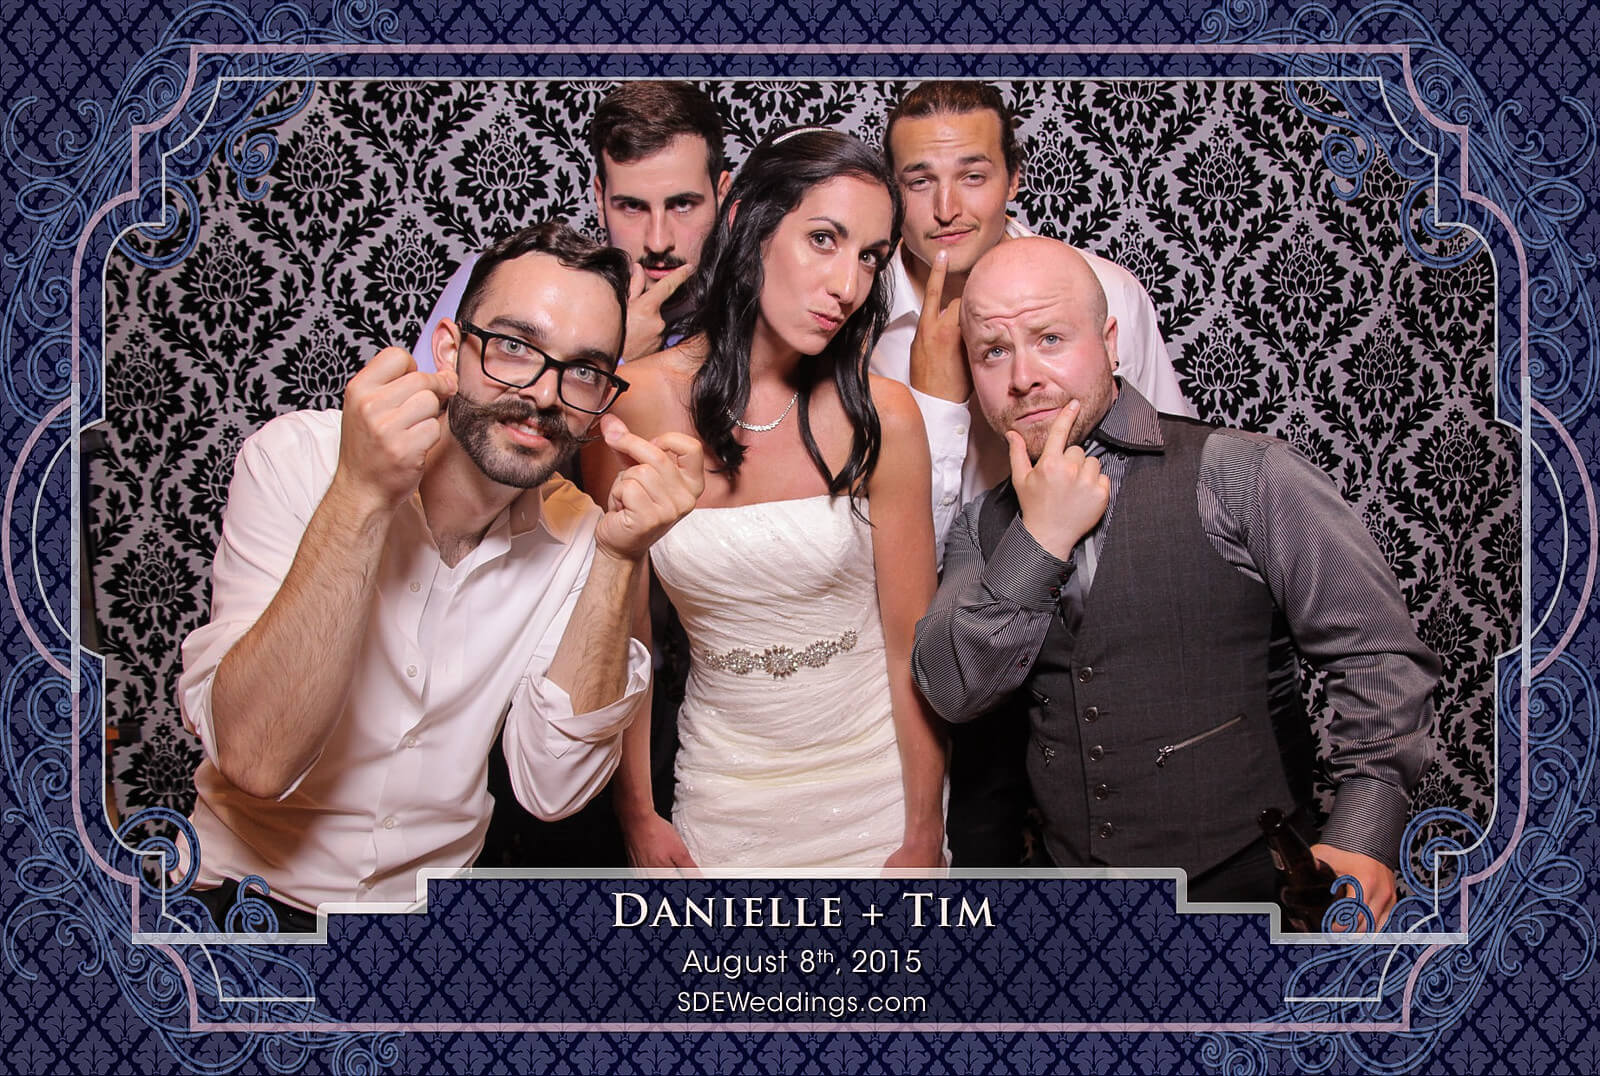 Toronto Old Mill Inn Wedding Photo Booth Rental 4